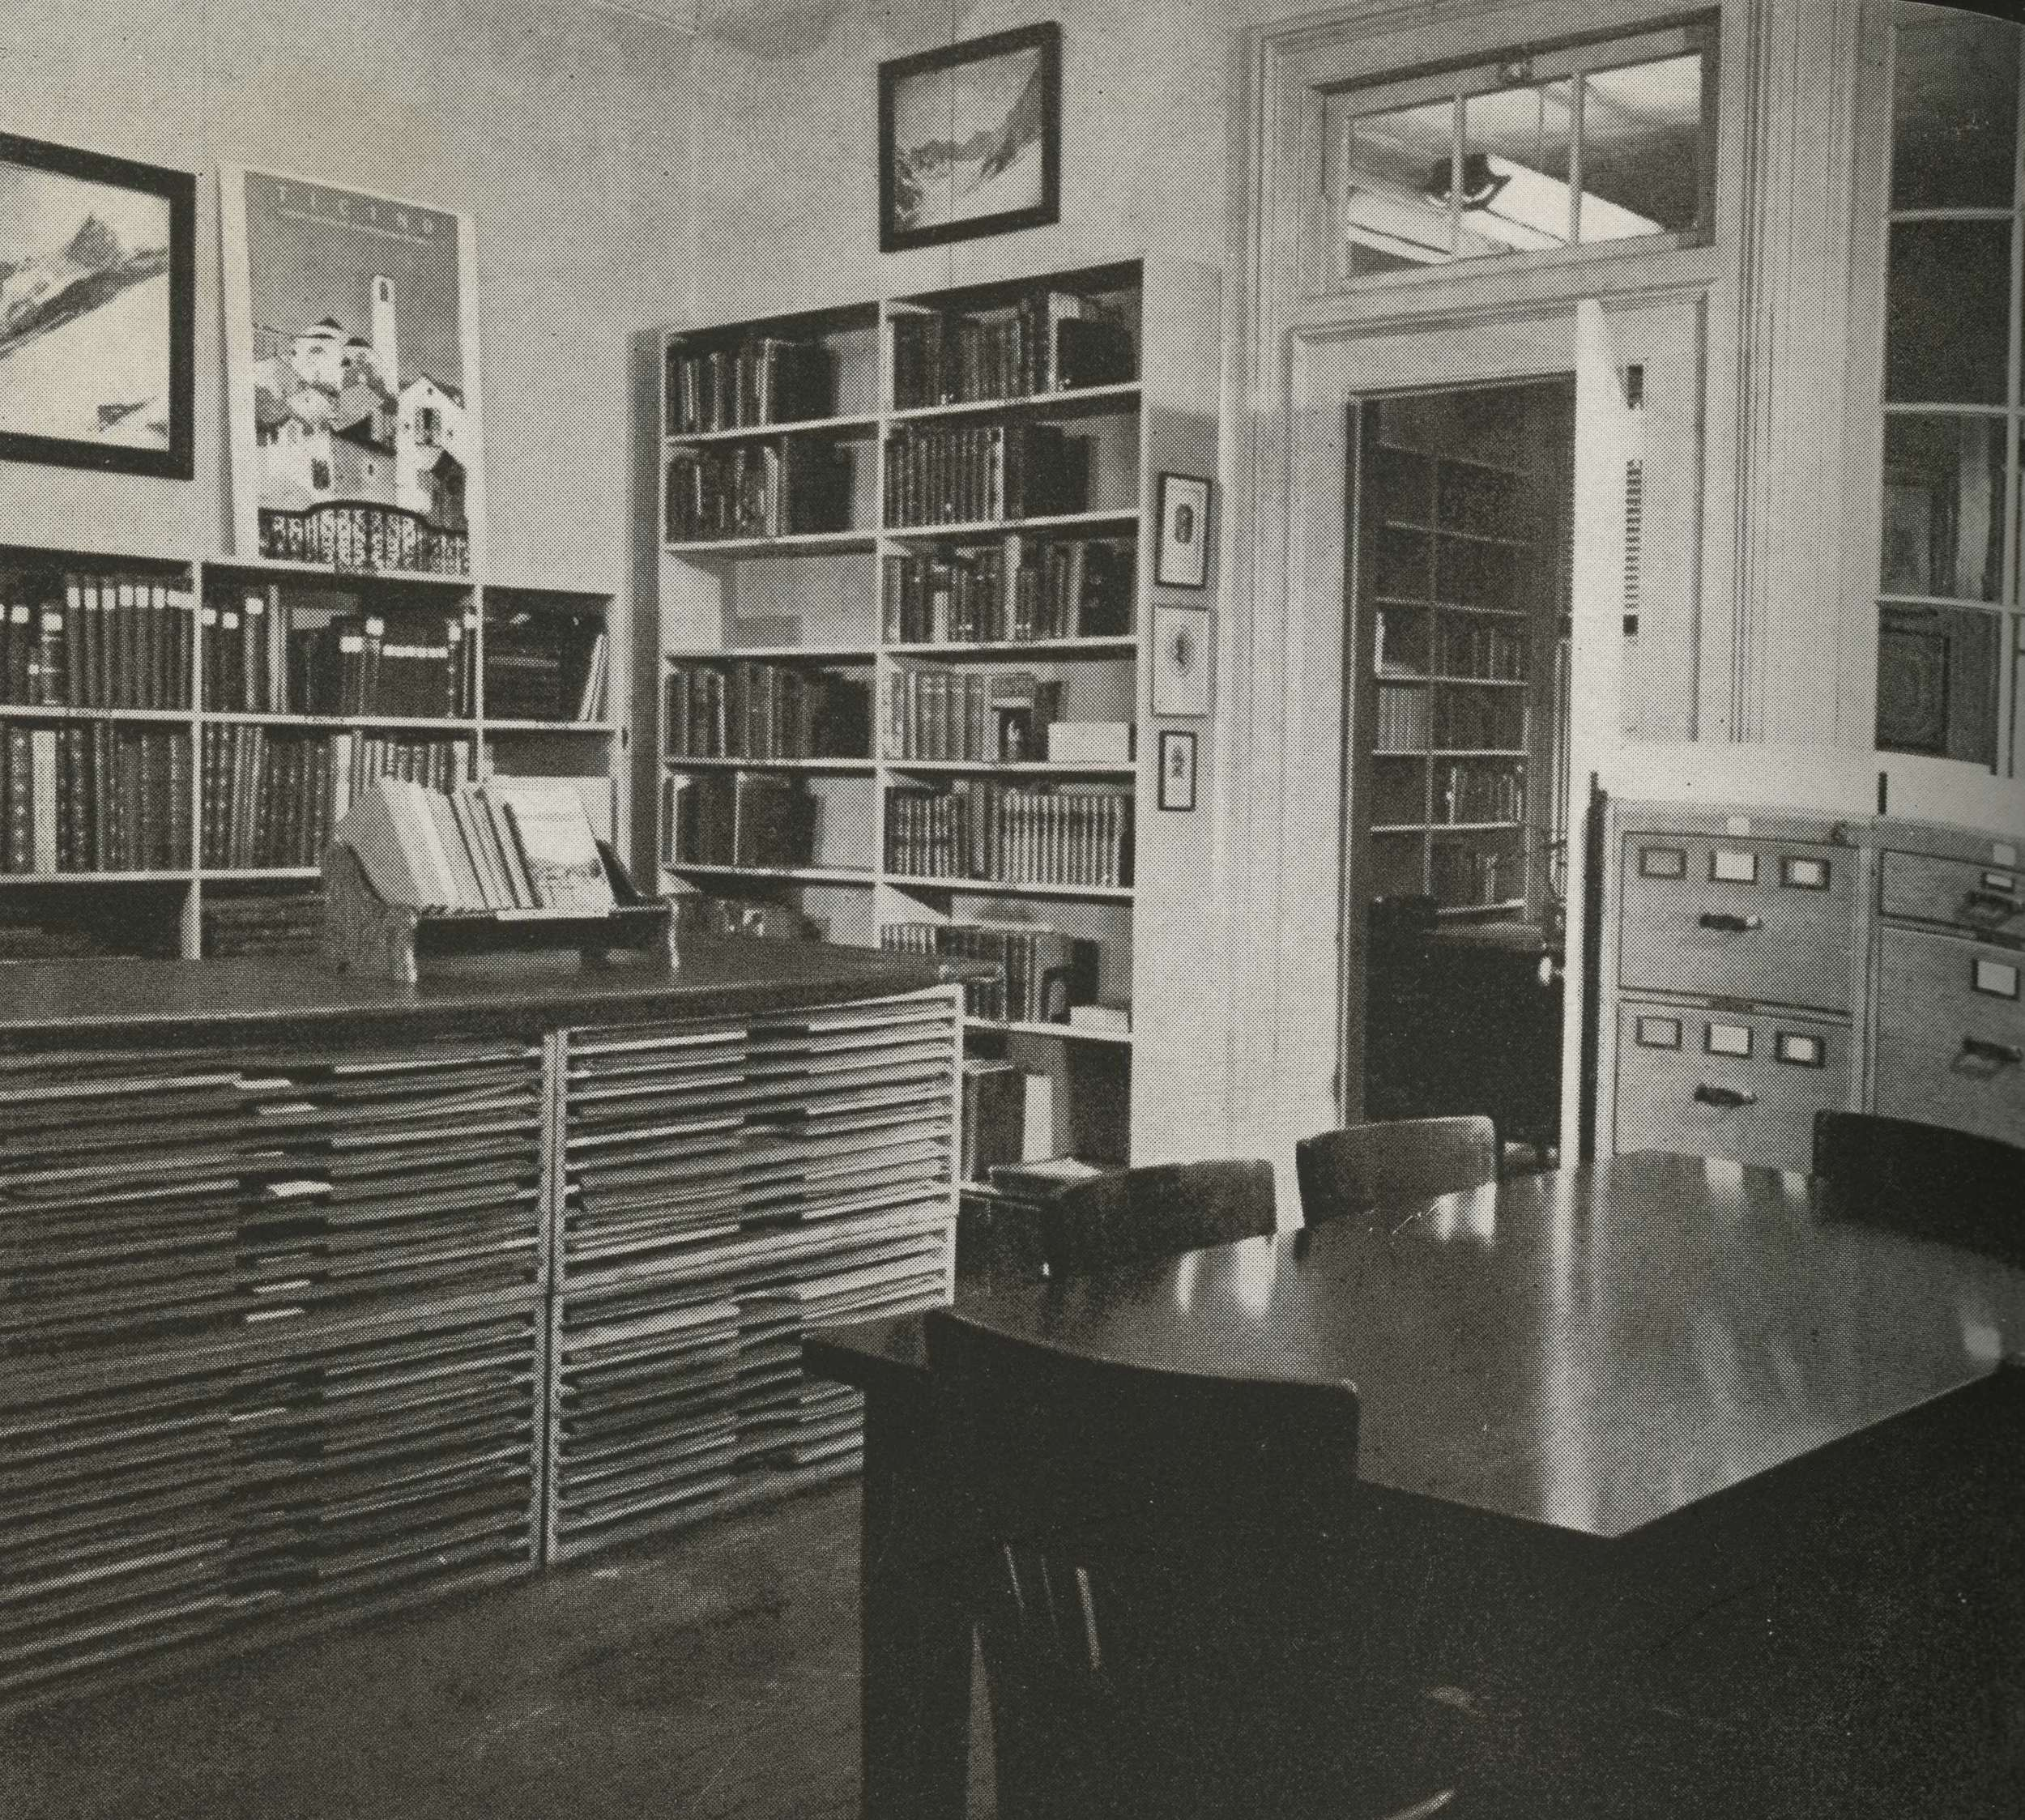 One of the library rooms in the clubhouse at 113 East 90th Street, NYC, in 1948. Photo: American Alpine Journal, 1949.